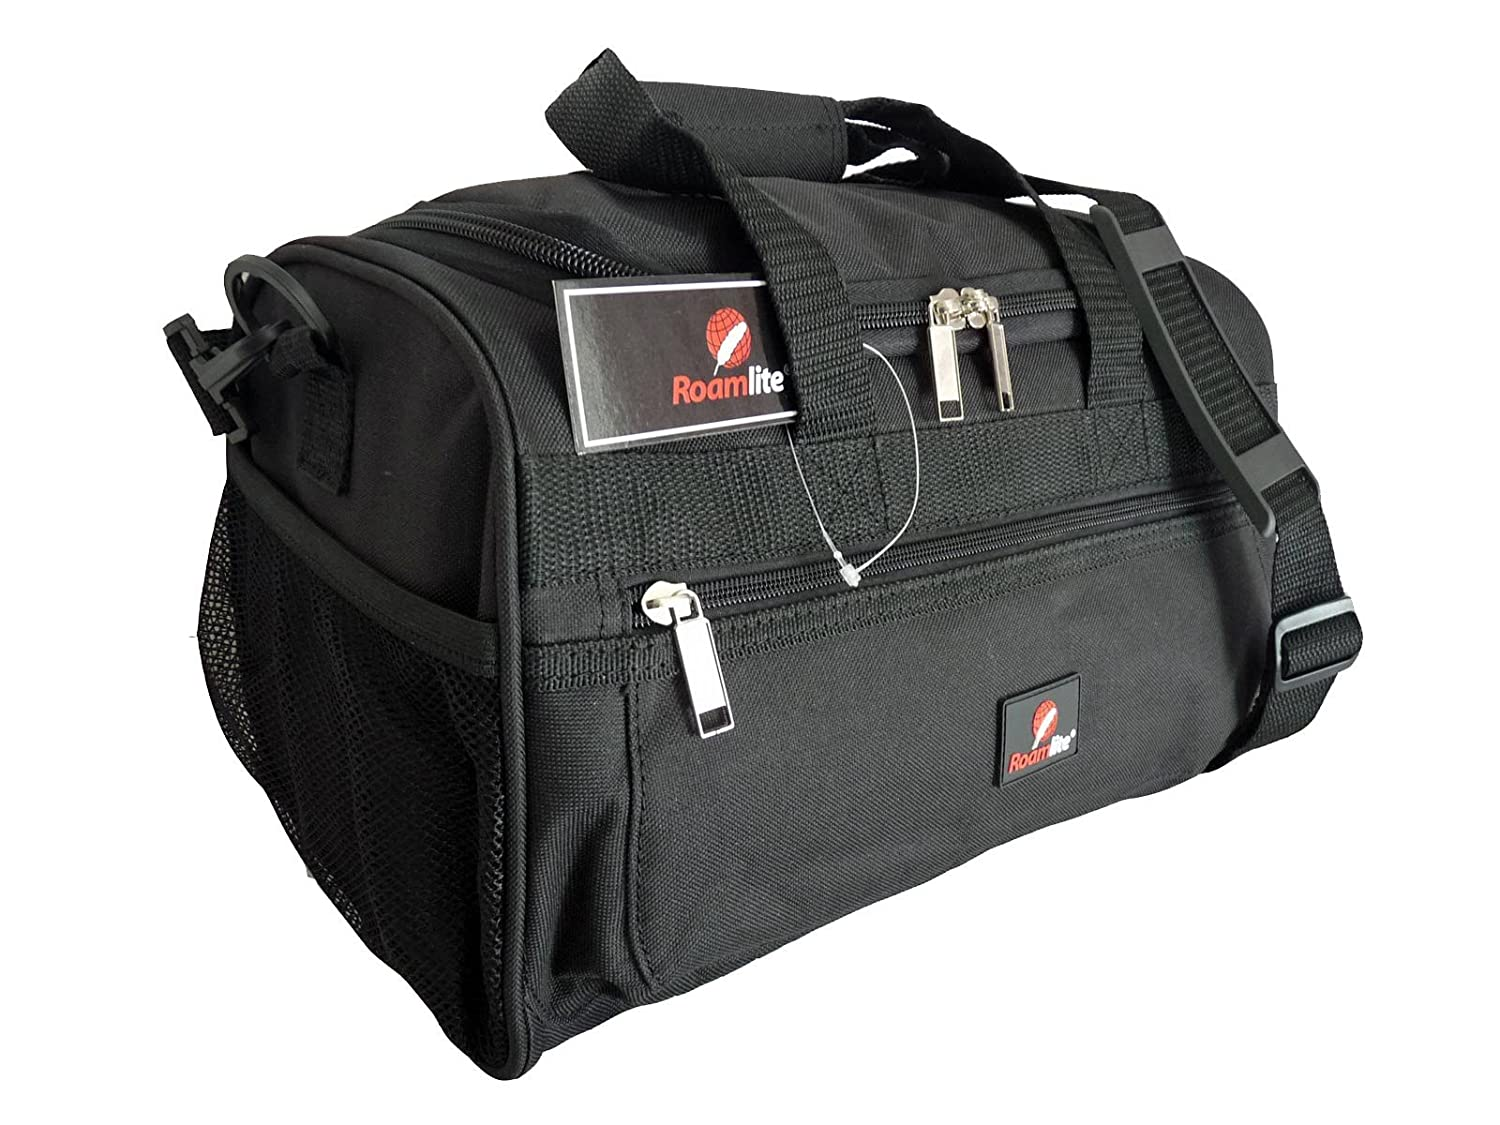 Small Holdalls - Ryanair 2nd Item of Hand Luggage Size Bags - Exact Size  Holdall 35 x 20 x 20 cm - Black Cabin Bag - Super Lightweight 0.4kg - Under  SEAT ... 9b30c626037ab